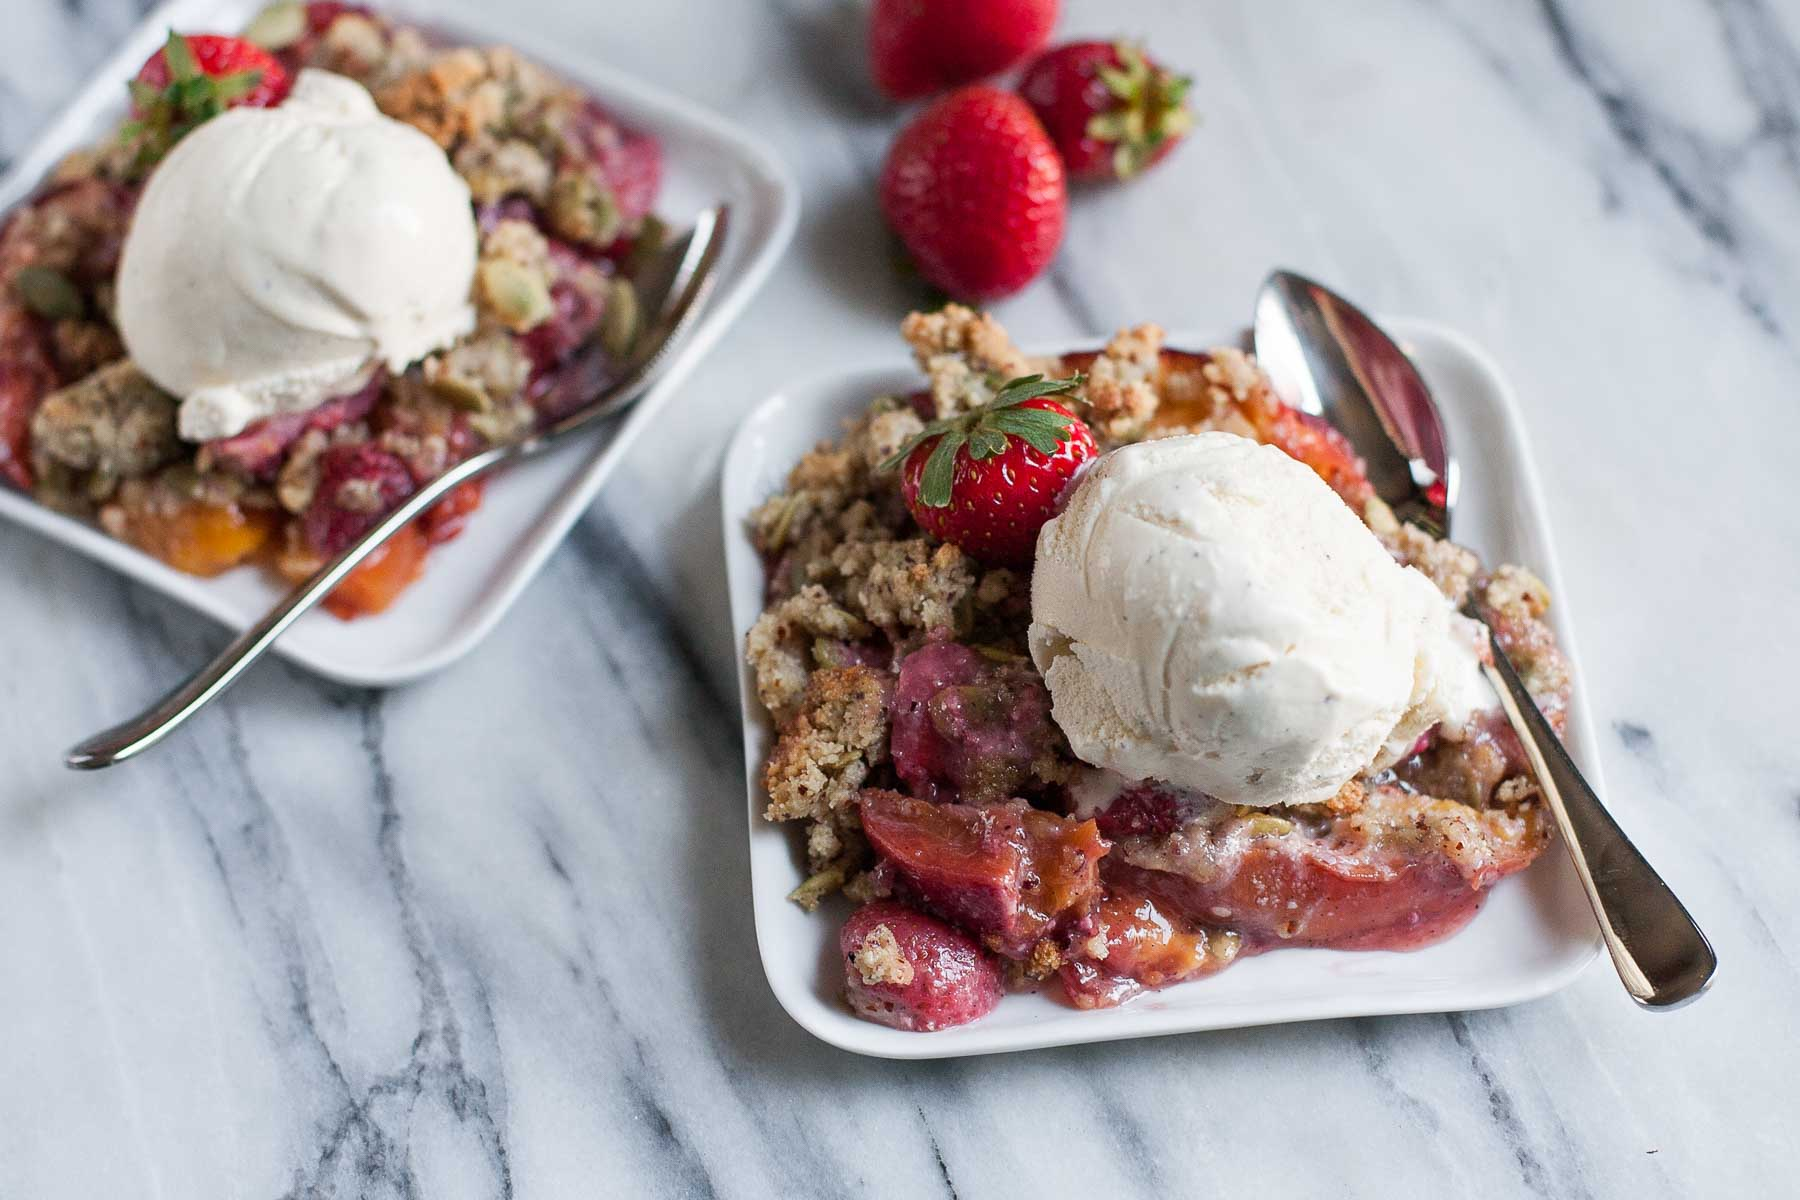 Strawberry-Peach Crisp with Hazelnut-Pepita Crumble | acalculatedwhisk.com